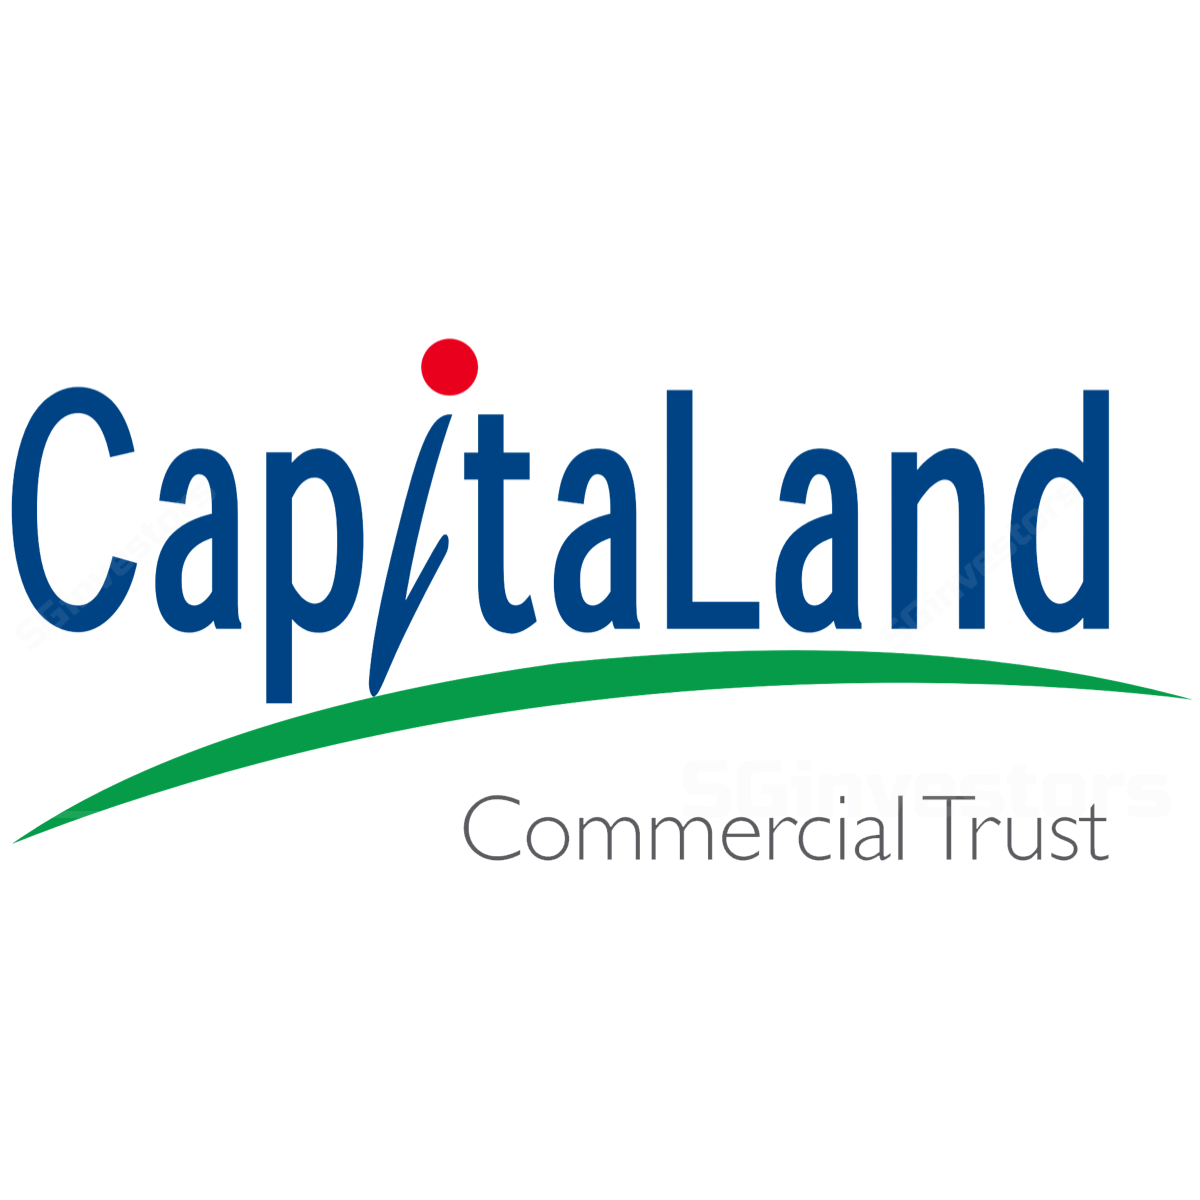 CapitaLand Commercial Trust - DBS Vickers 2017-12-15: Quality To Rise To The Top